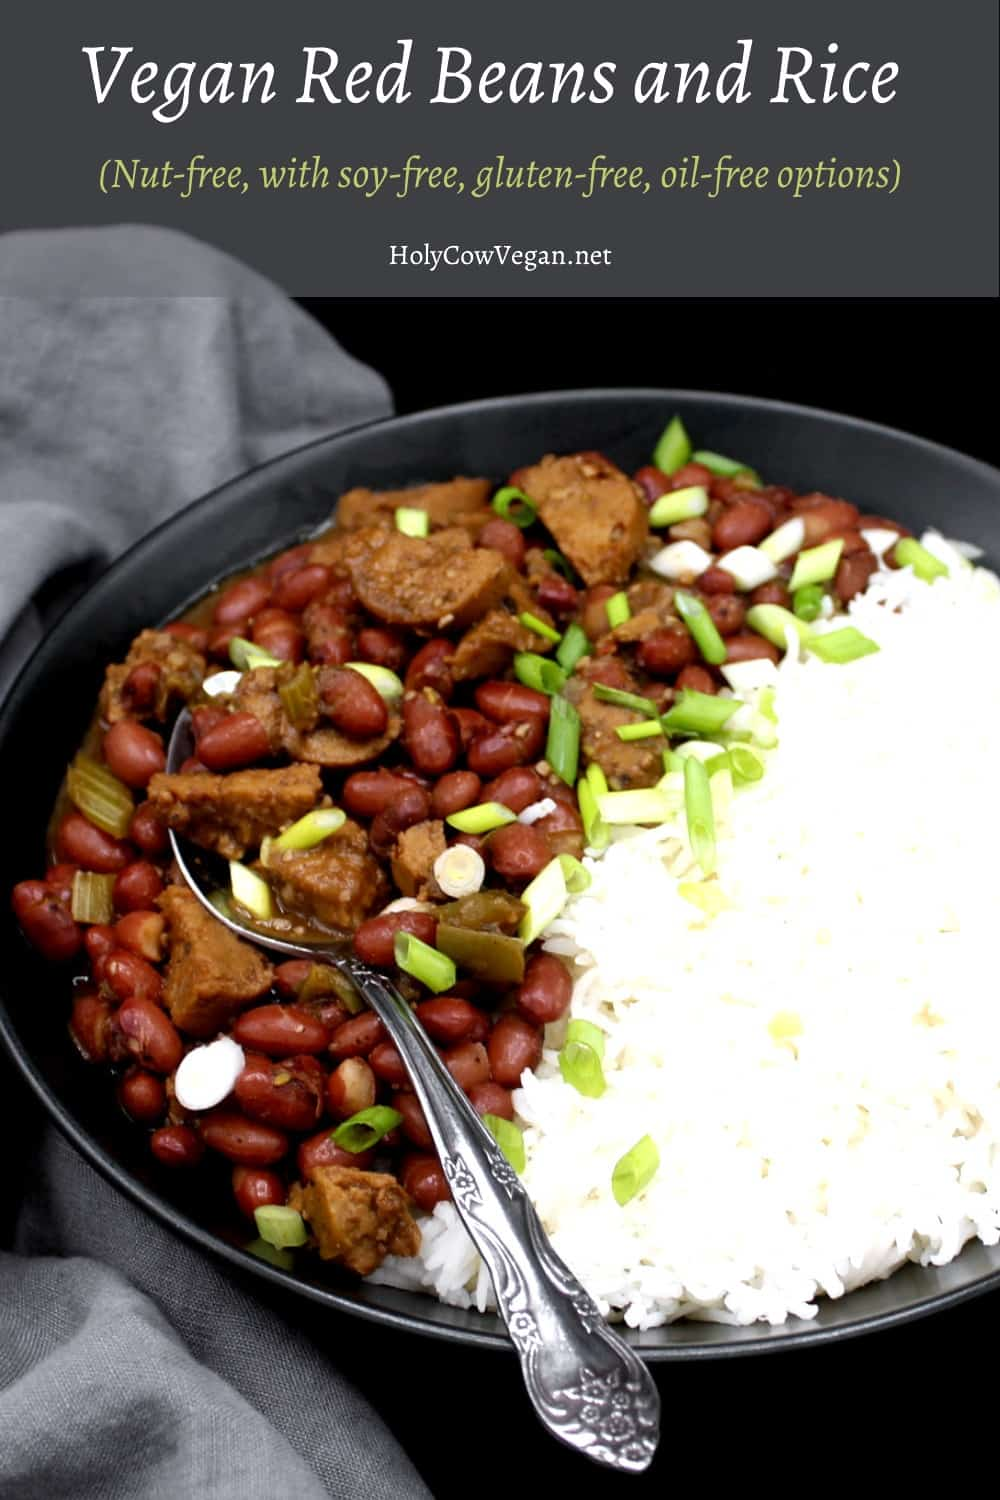 Photo of red beans and rice in a black bowl with a spoon.